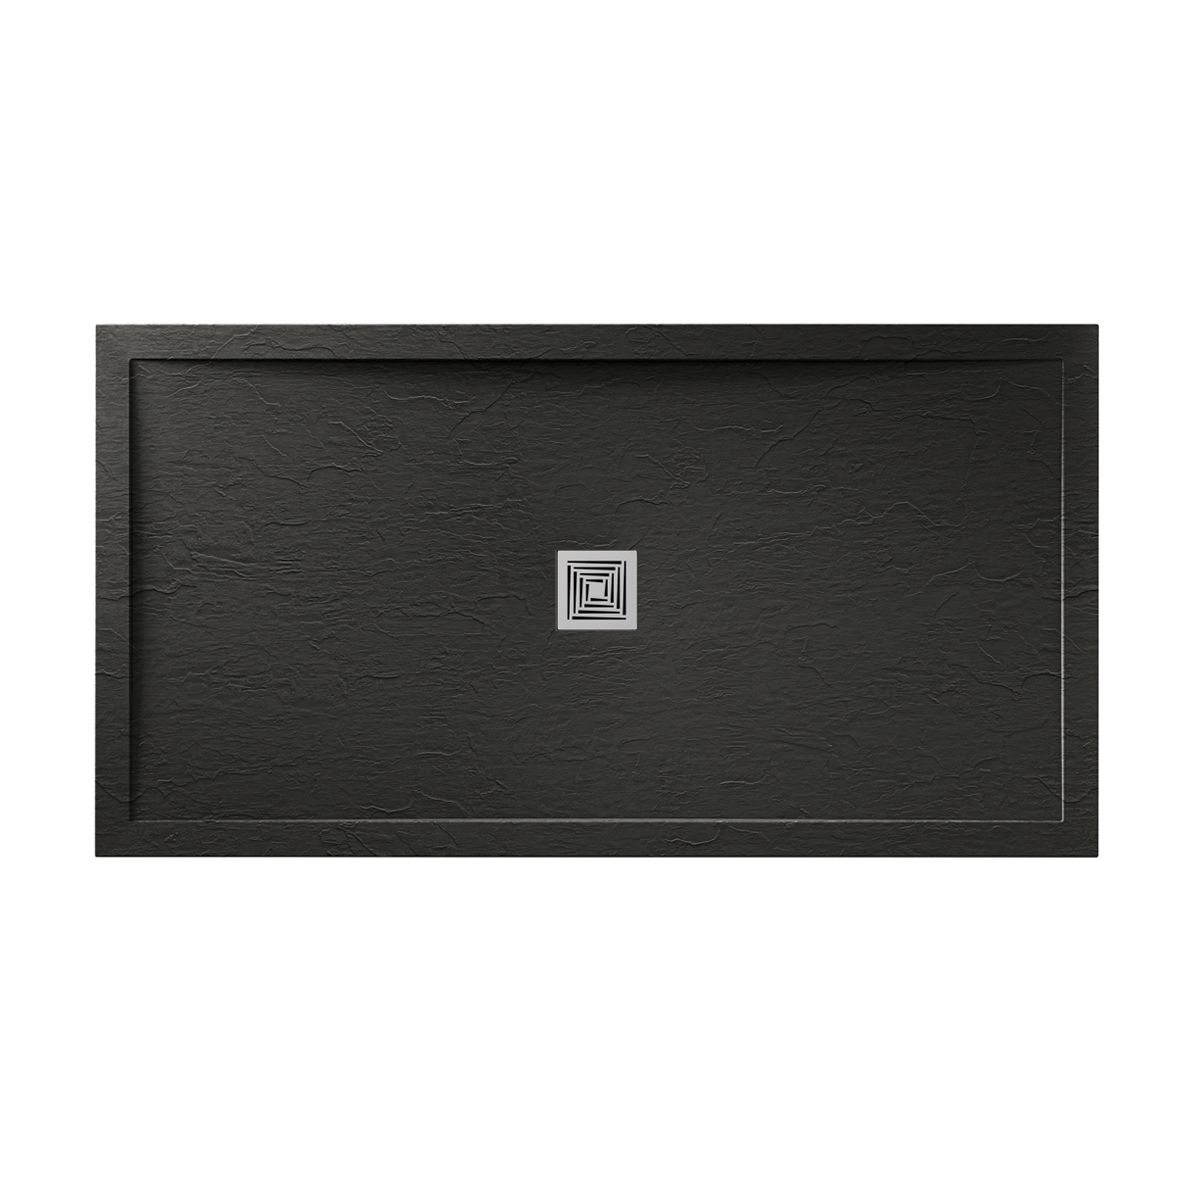 Aquadart Black Slate Shower Tray 1400 x 760